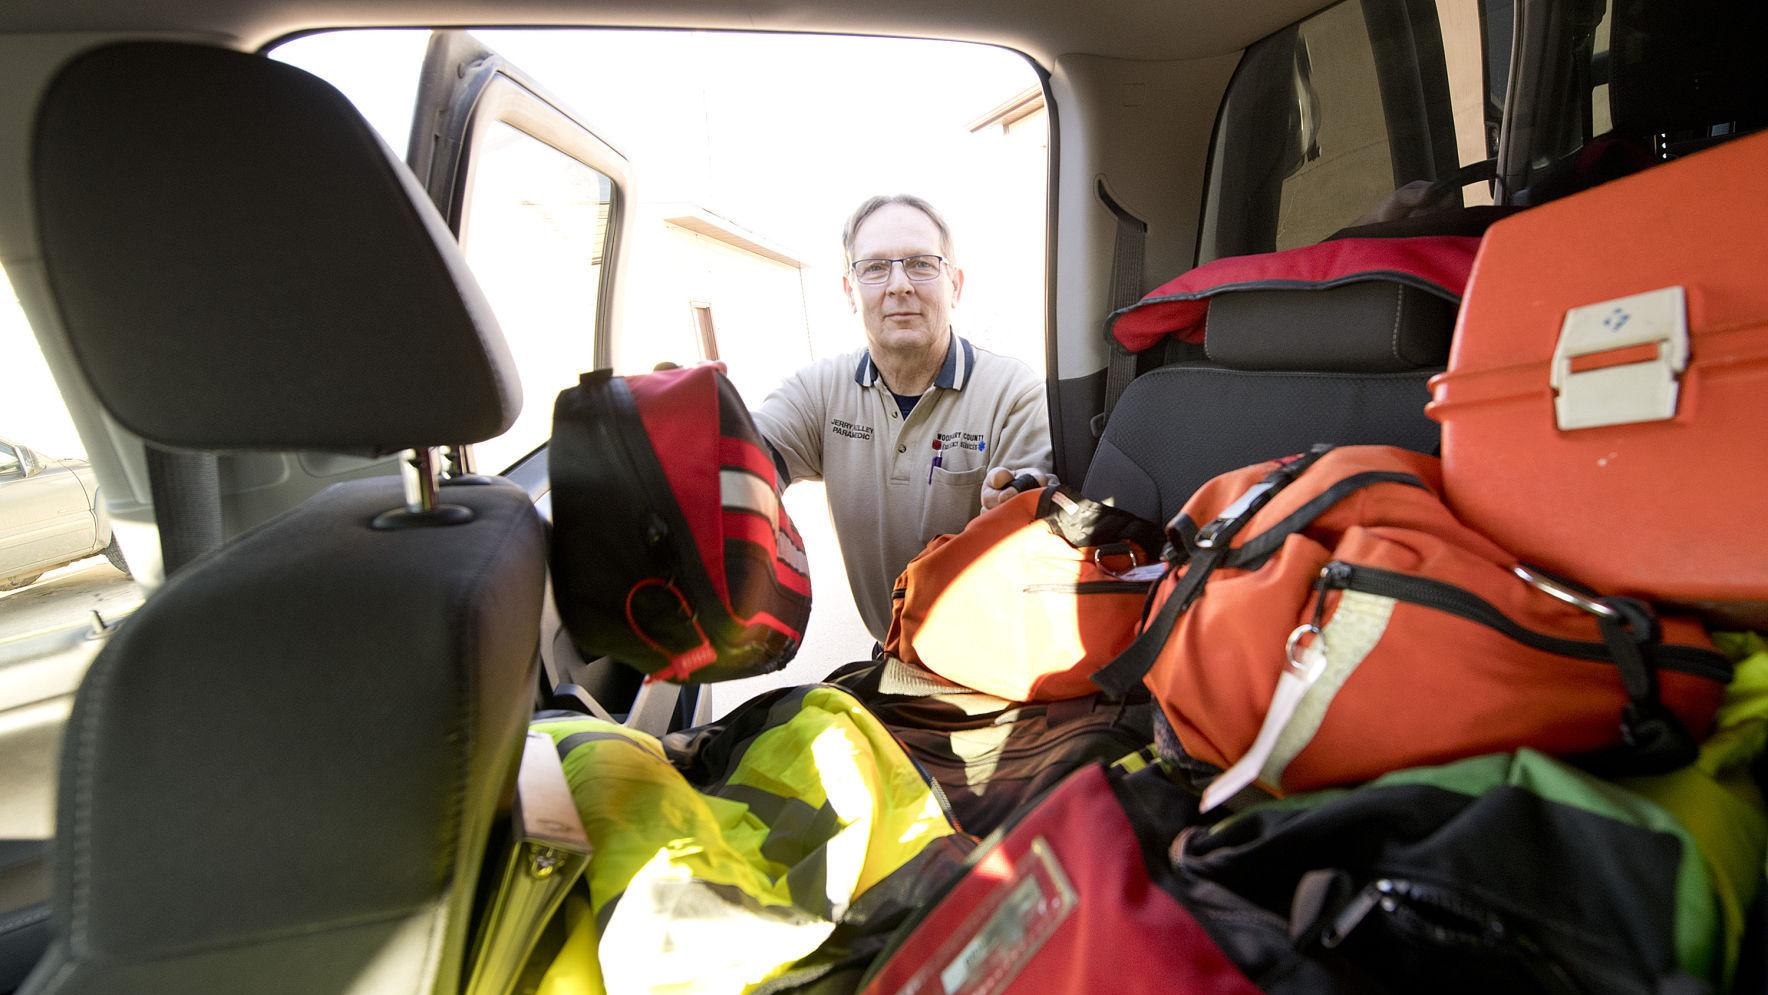 JOURNAL SPECIAL REPORT: Siouxland Paramedics exit will leave gap in rural paramedic care